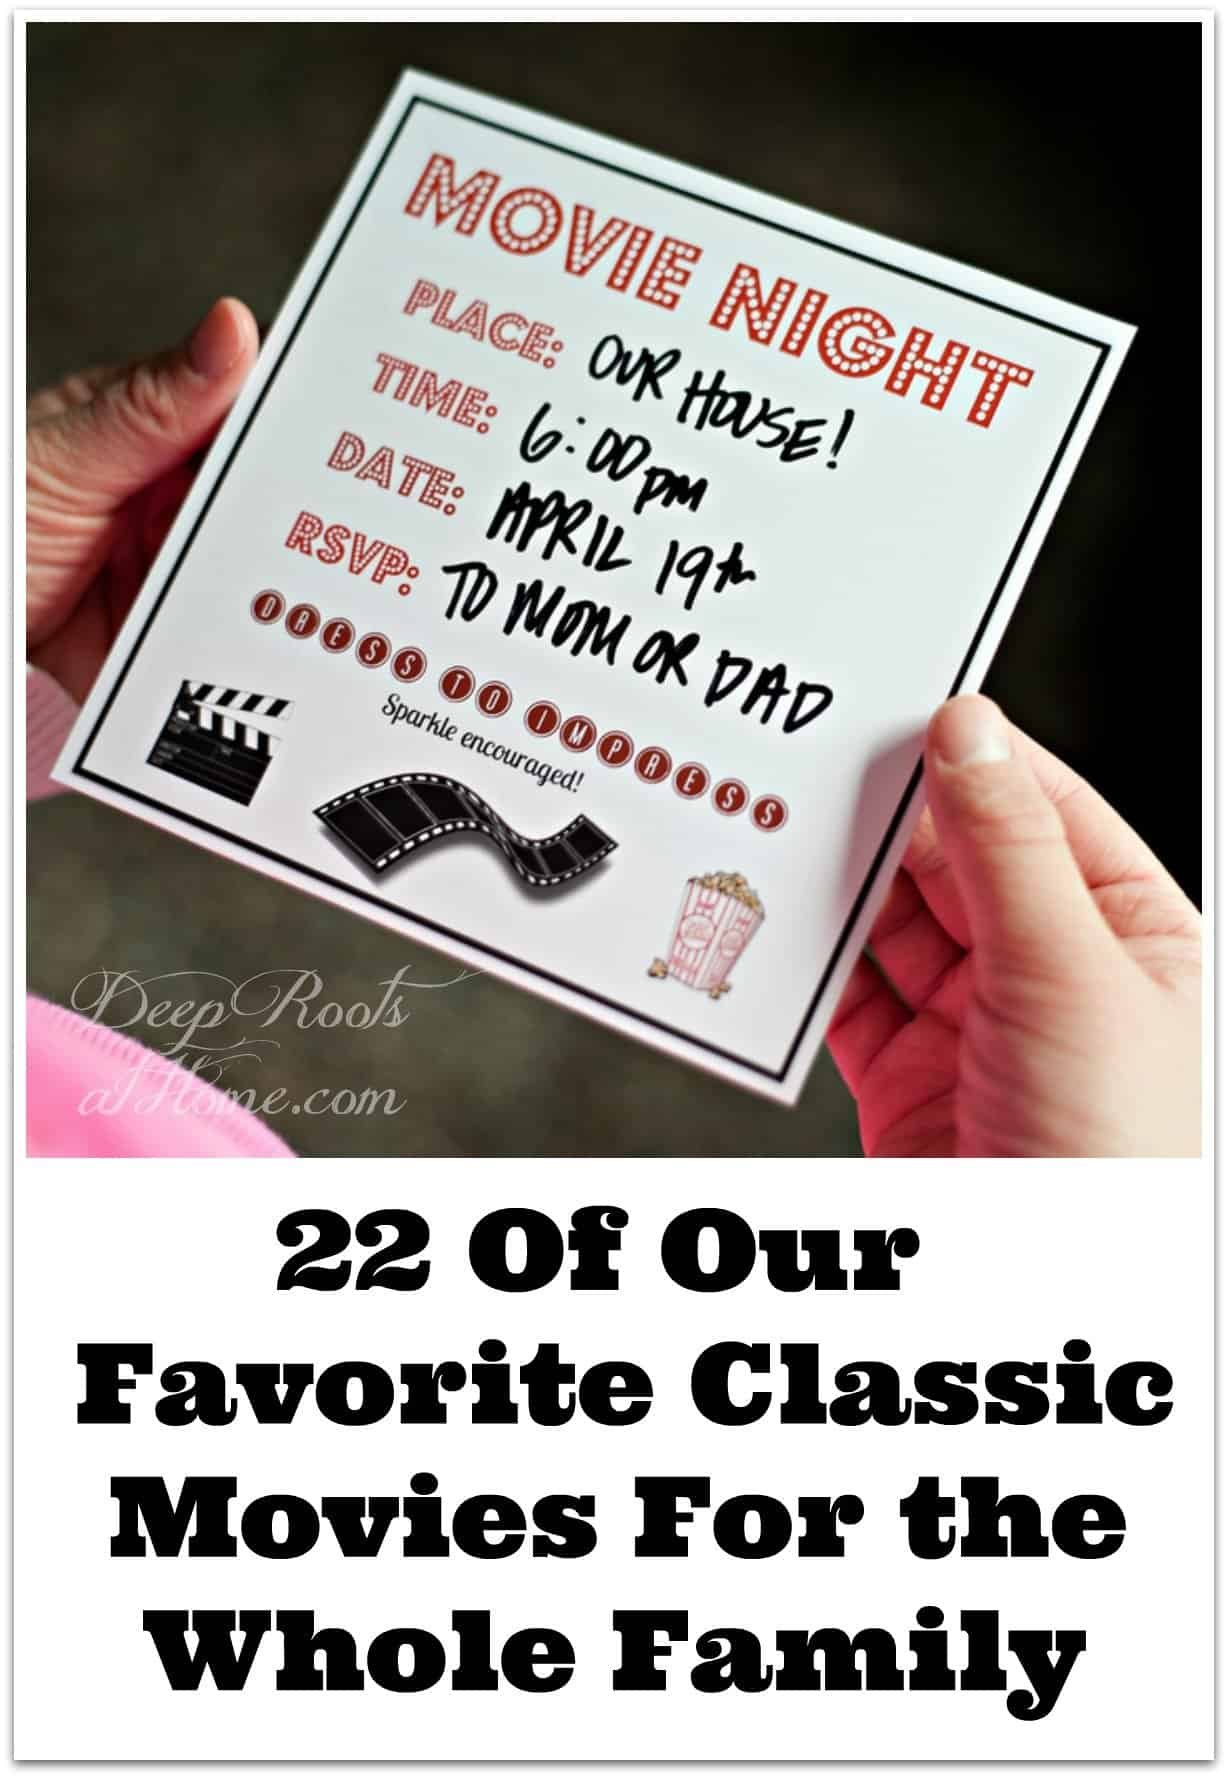 20 Of Our Favorite Classic Movies For the Whole Family. A family movie invitation.